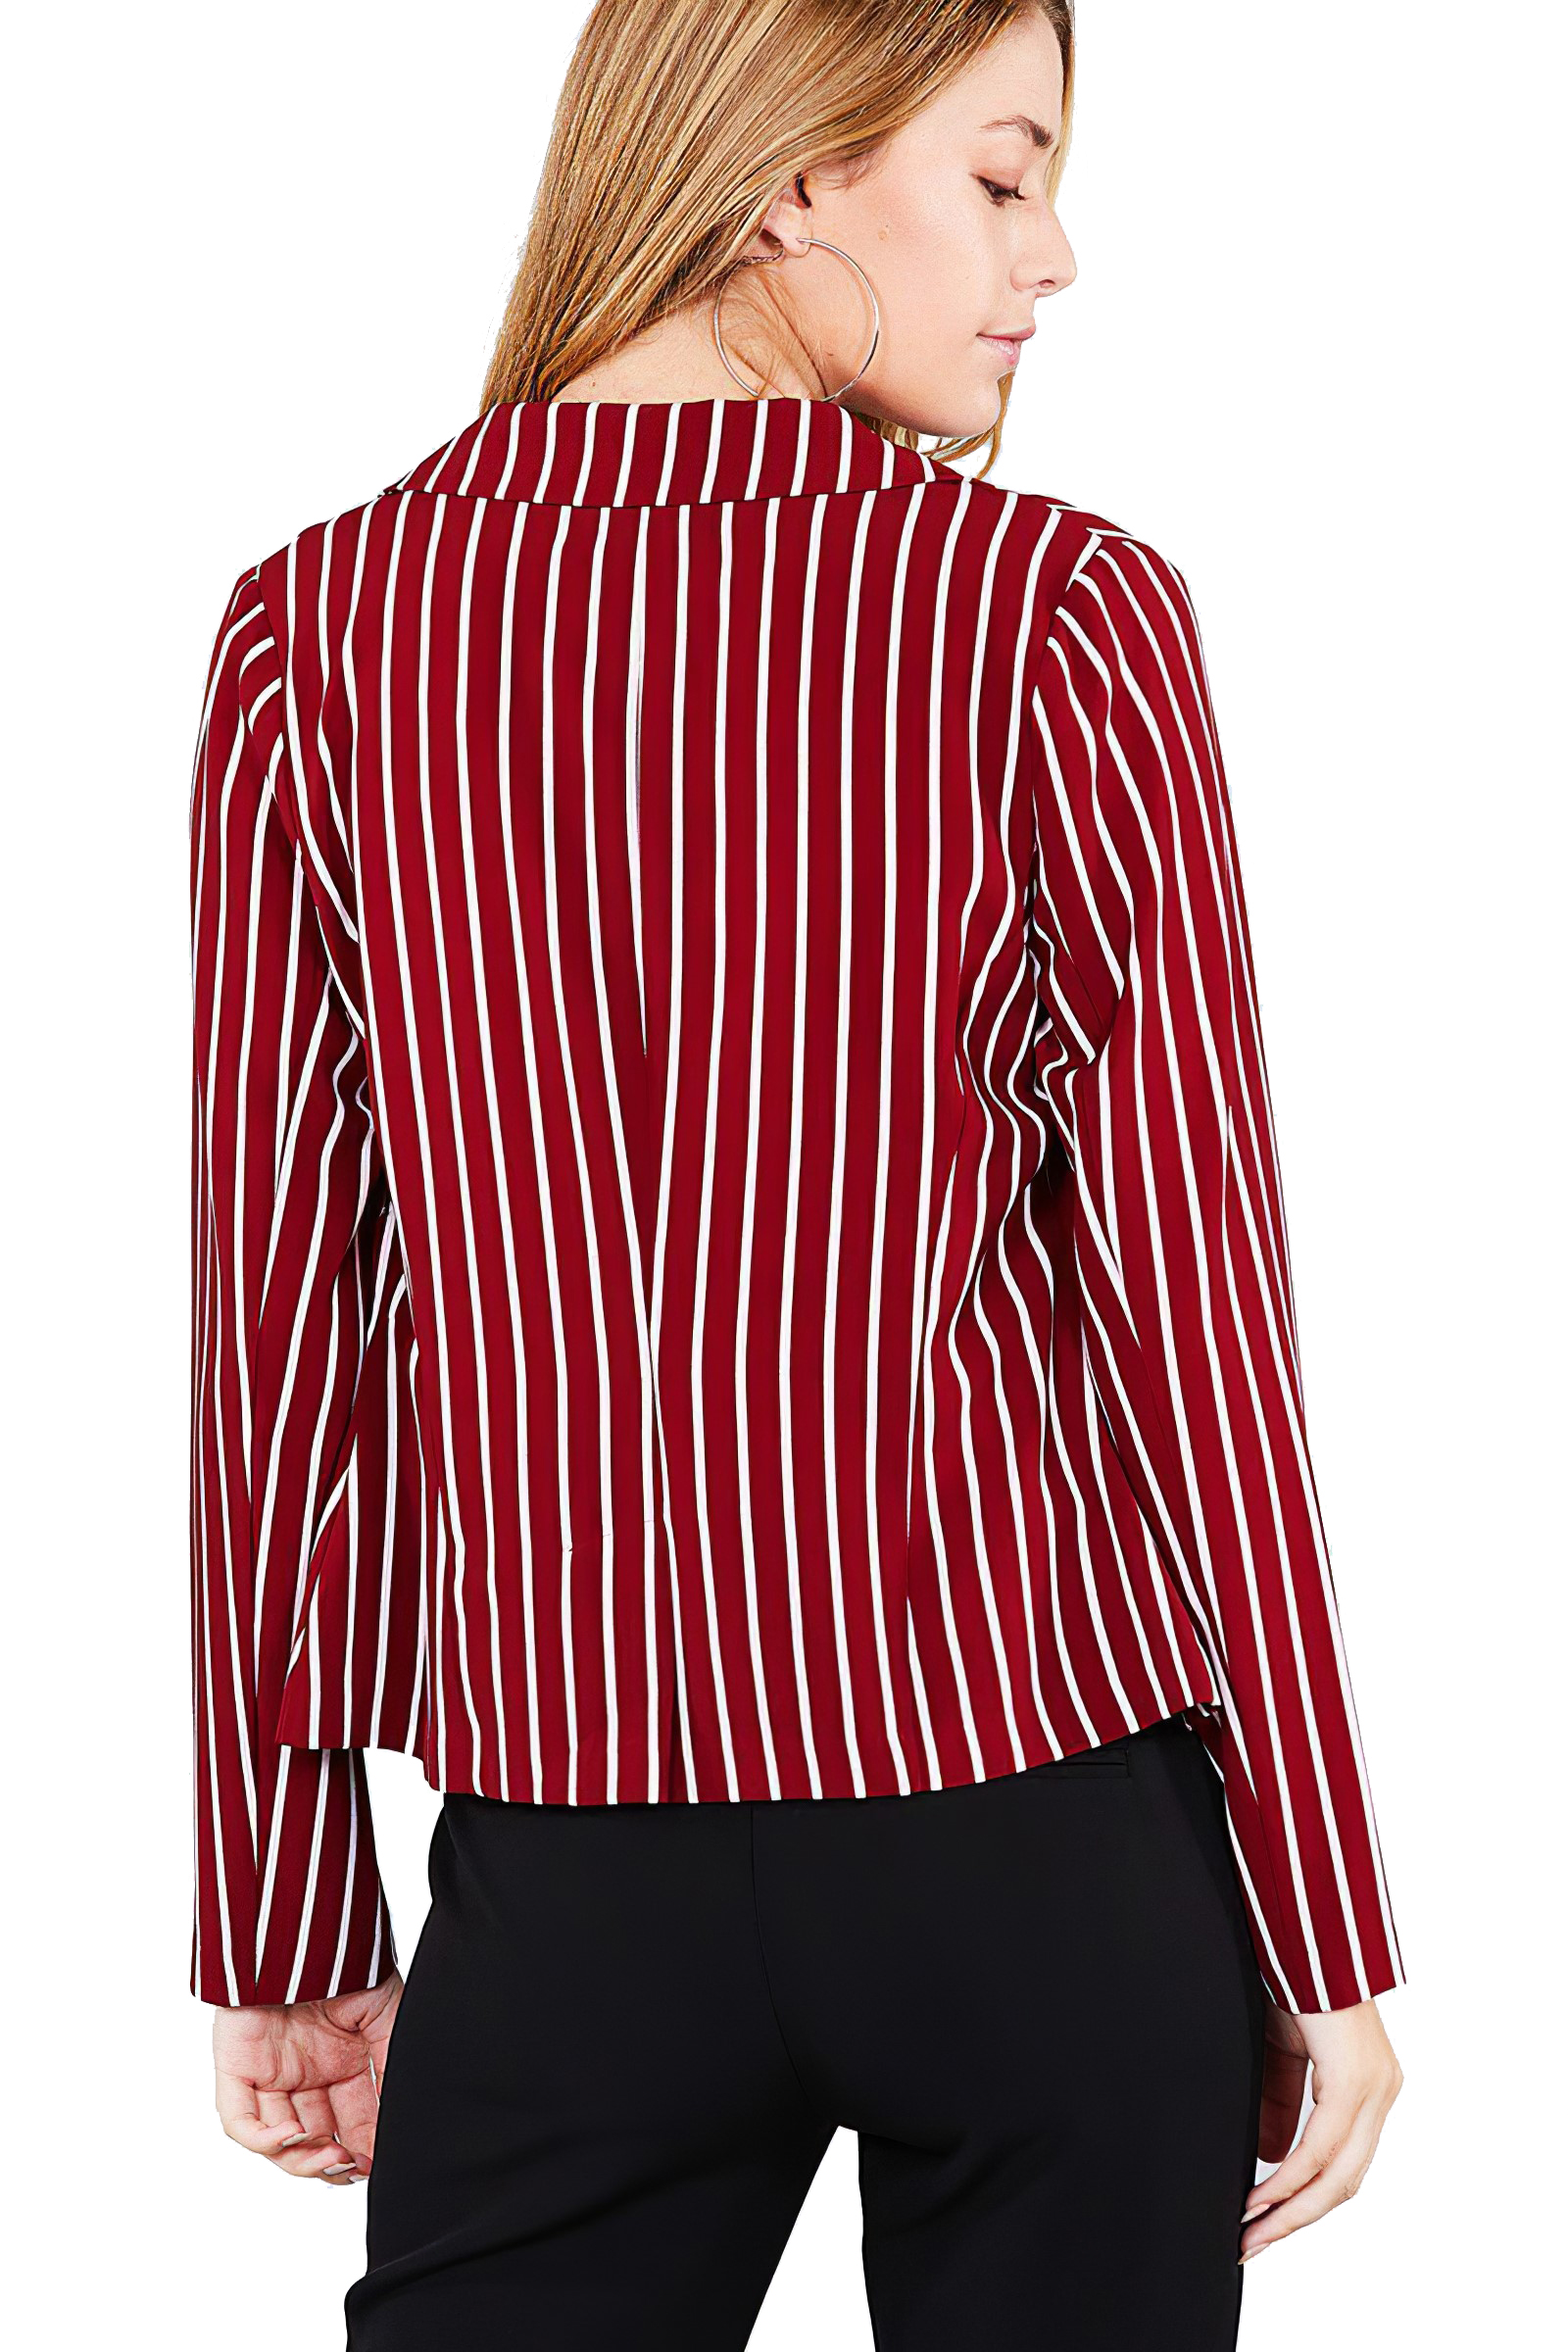 Women-039-s-Juniors-Premium-Stretch-Striped-Long-Sleeve-Jacket thumbnail 15